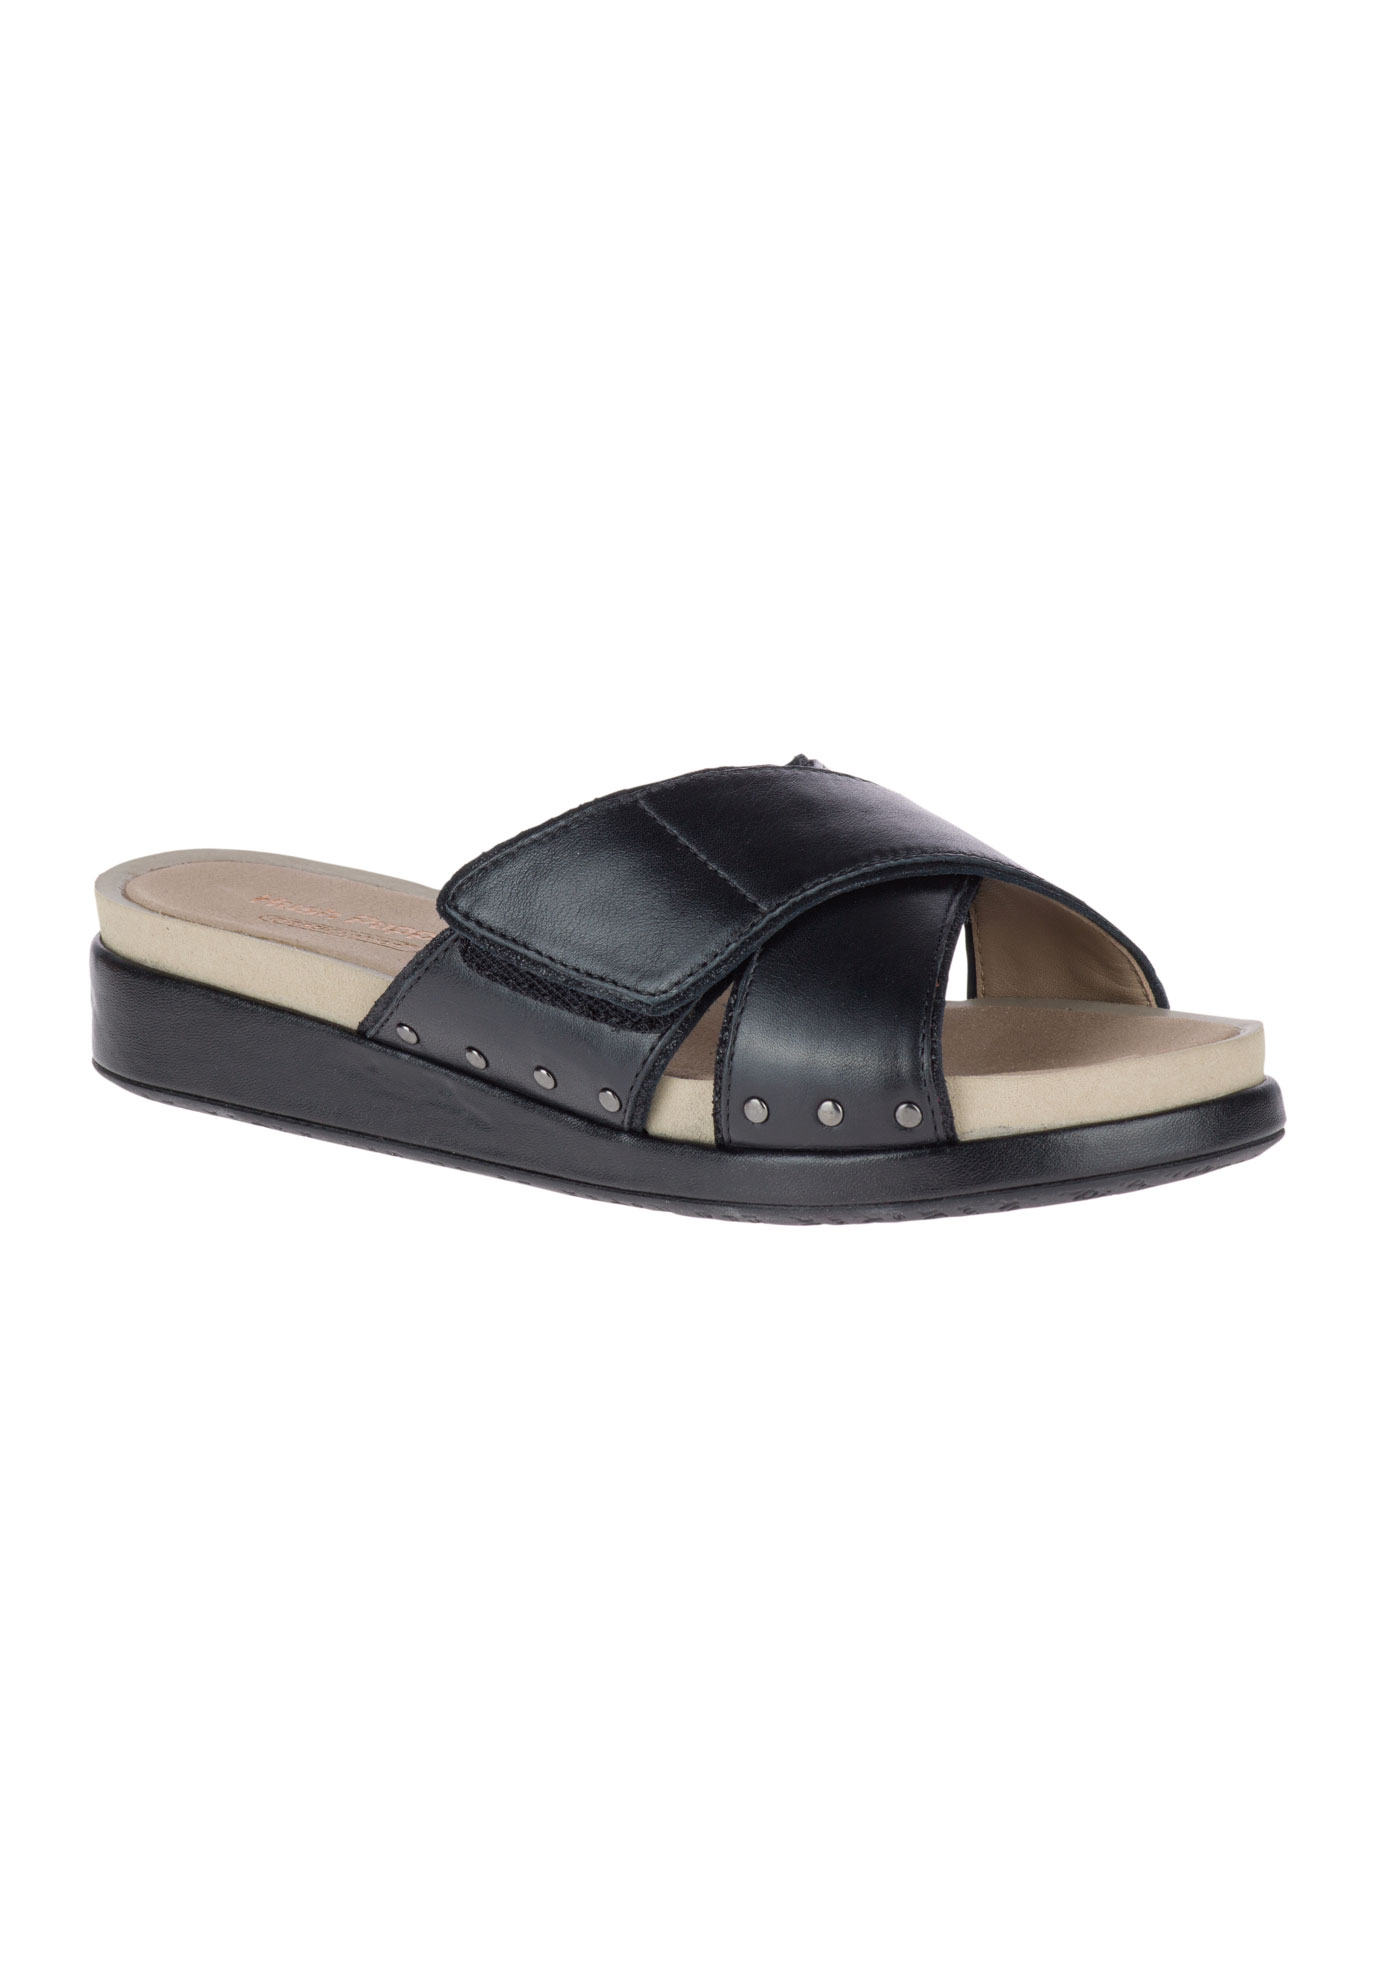 Chrysta Xband Slide Sandals by Hush Puppies®, BLACK LEATHER, hi-res